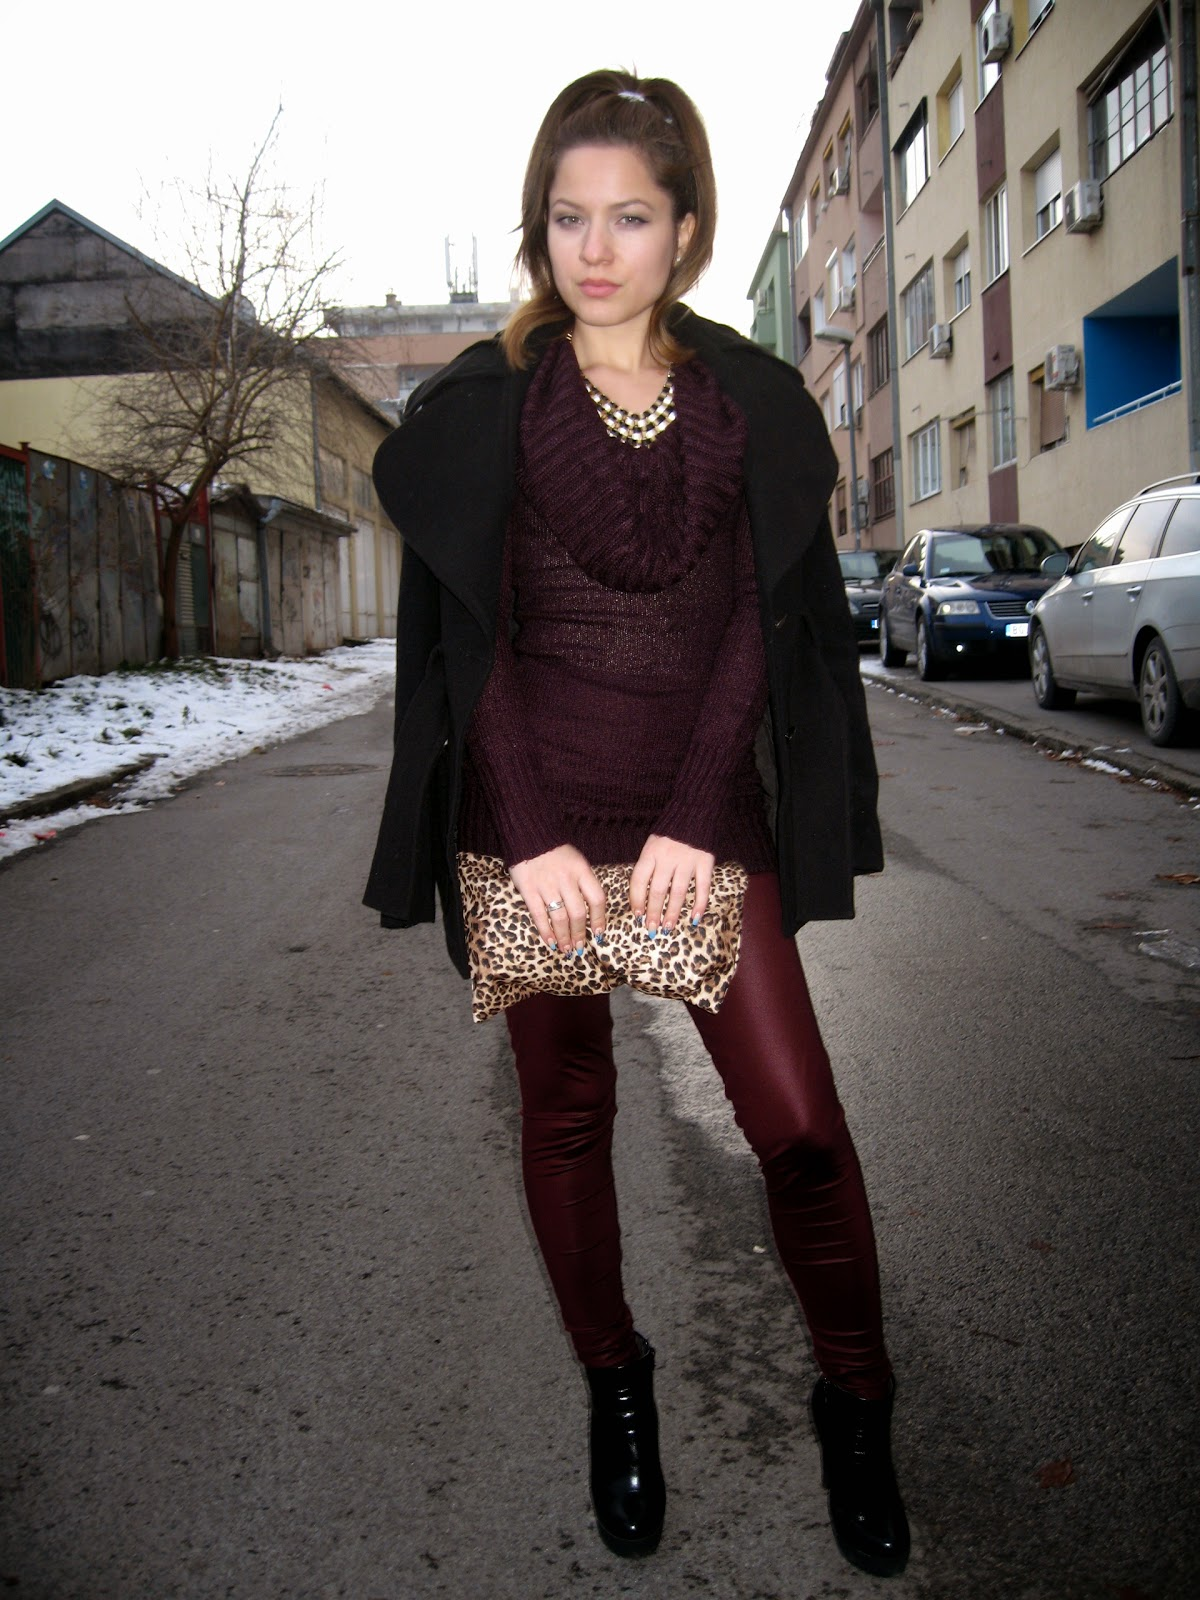 outfit, burgundy leggings, burgundy sweater, black coat, black boots, leopard print clutch bag, statement necklace, bornprettystore.com statement necklace, high ponytail